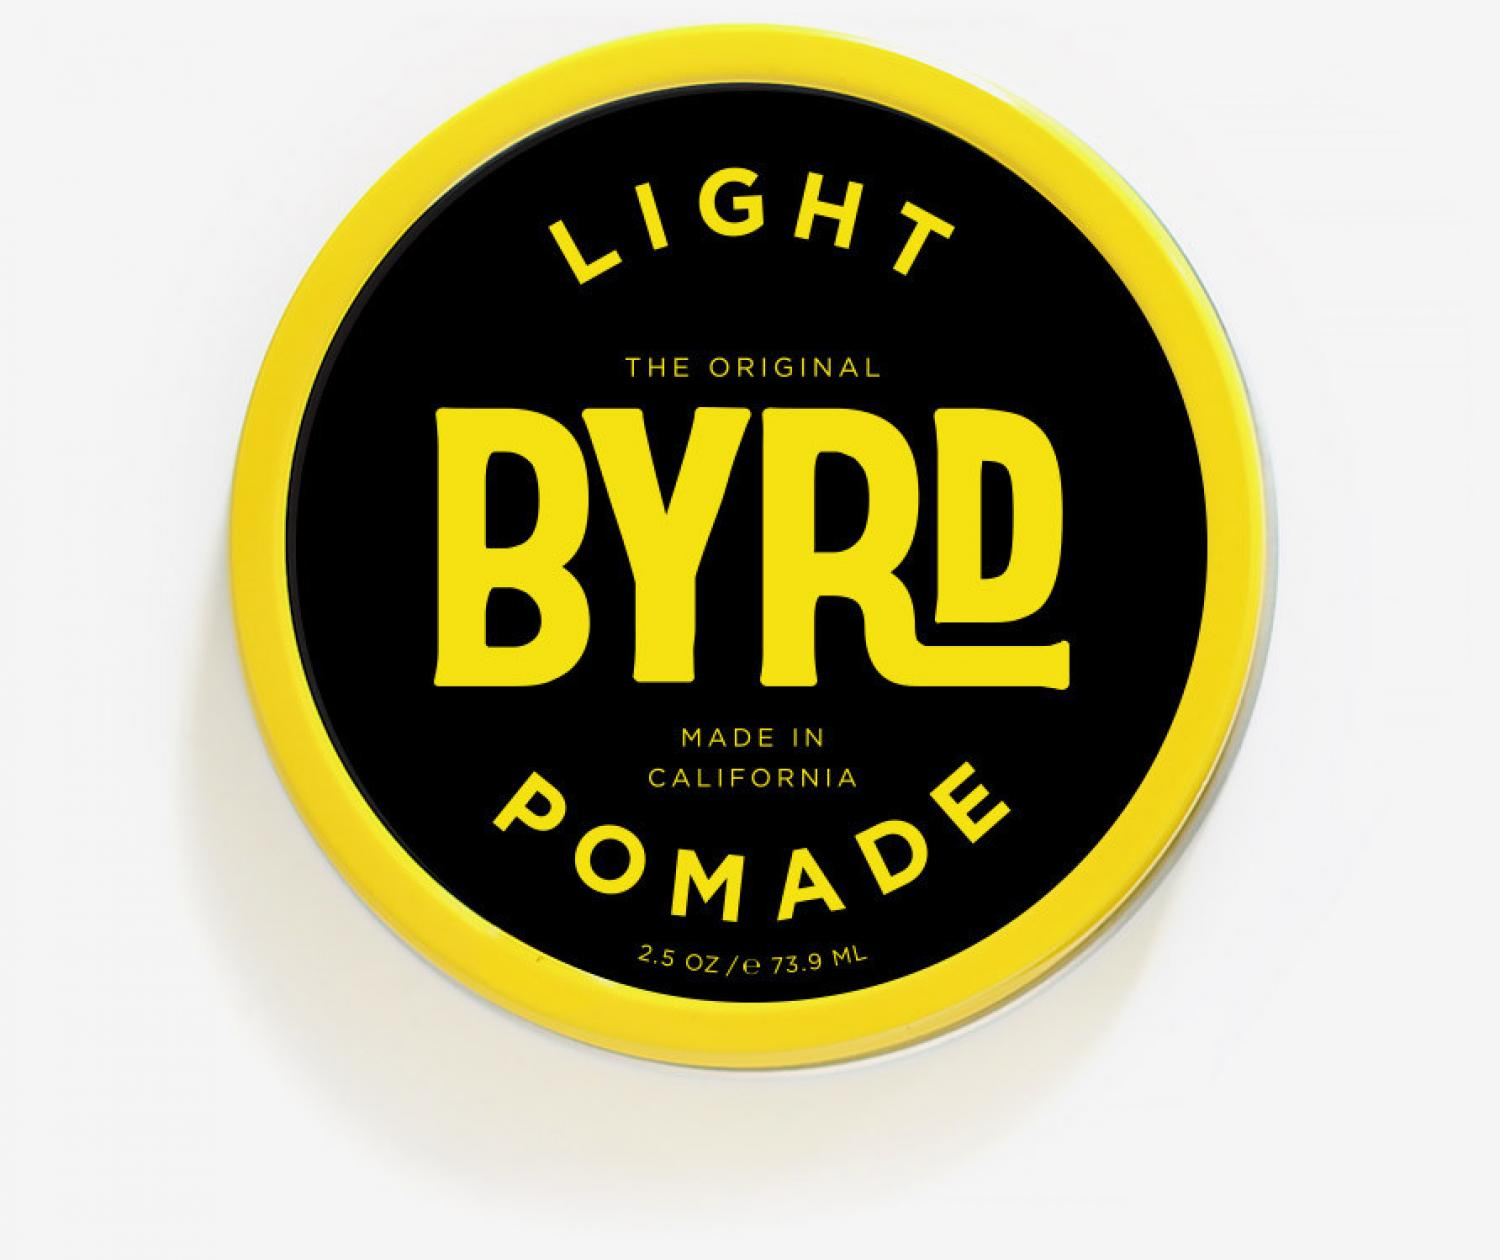 BYRD POMADE LIGHT The Free Ehukai Beach 70g